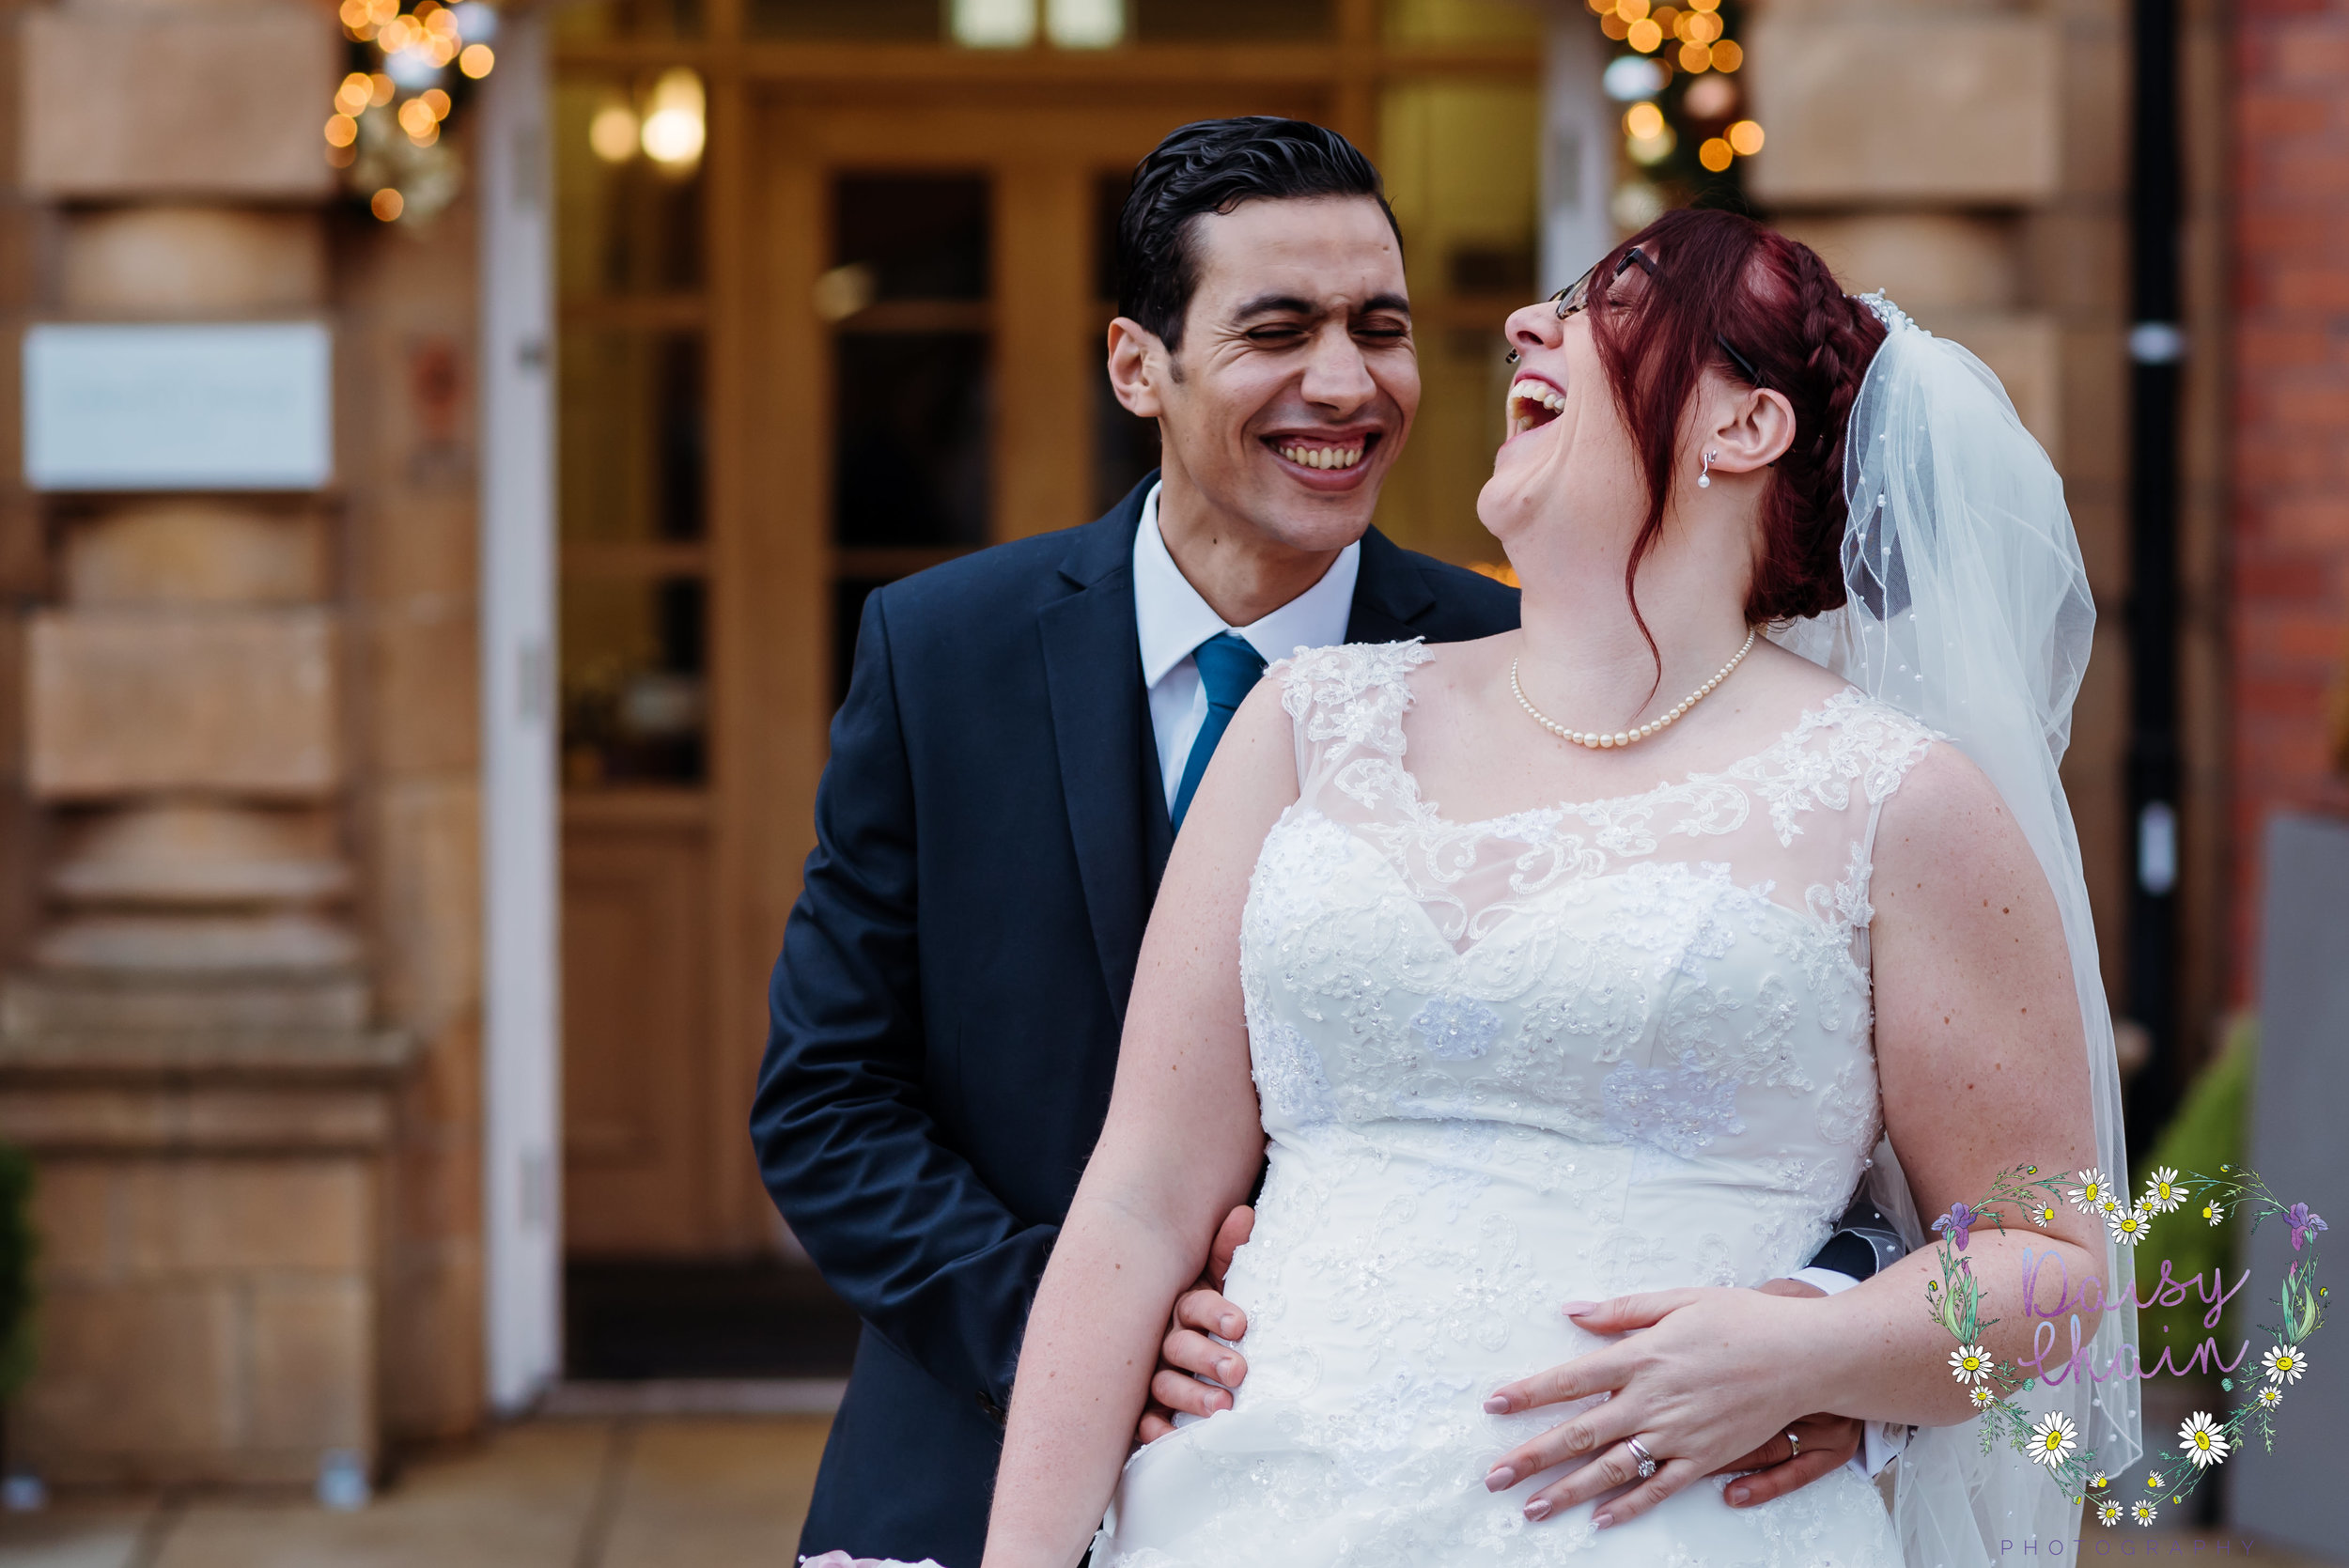 Cheadle House wedding - winter